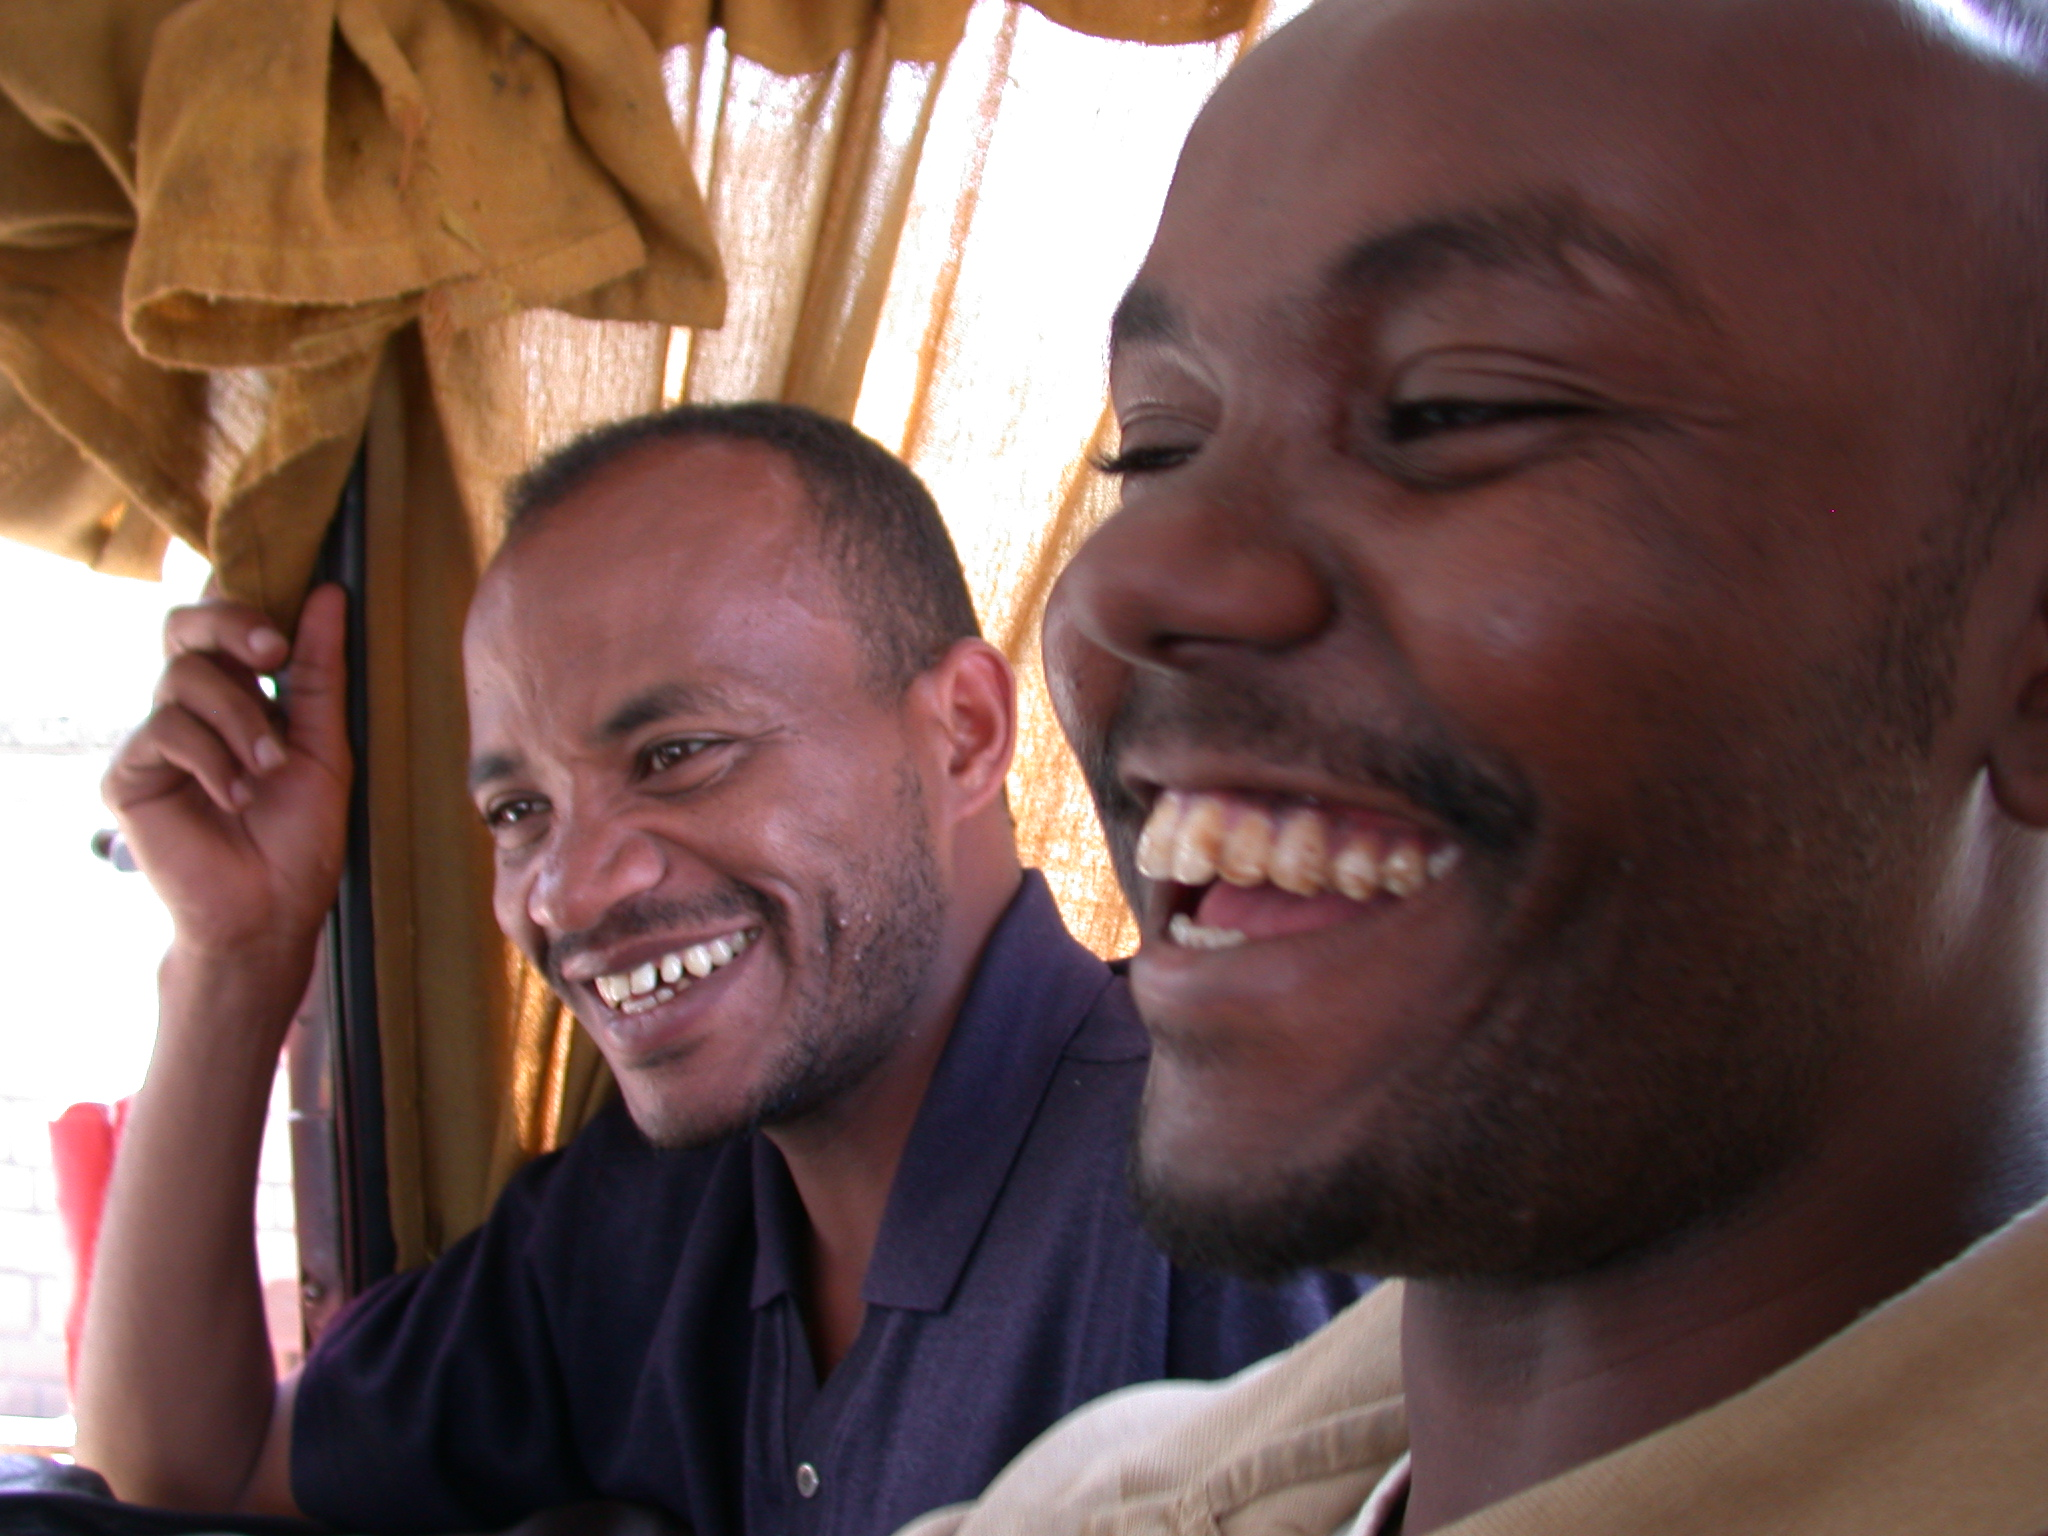 Friends on Second Bus Ride From Addis Ababa to Awash Saba, Ethiopia